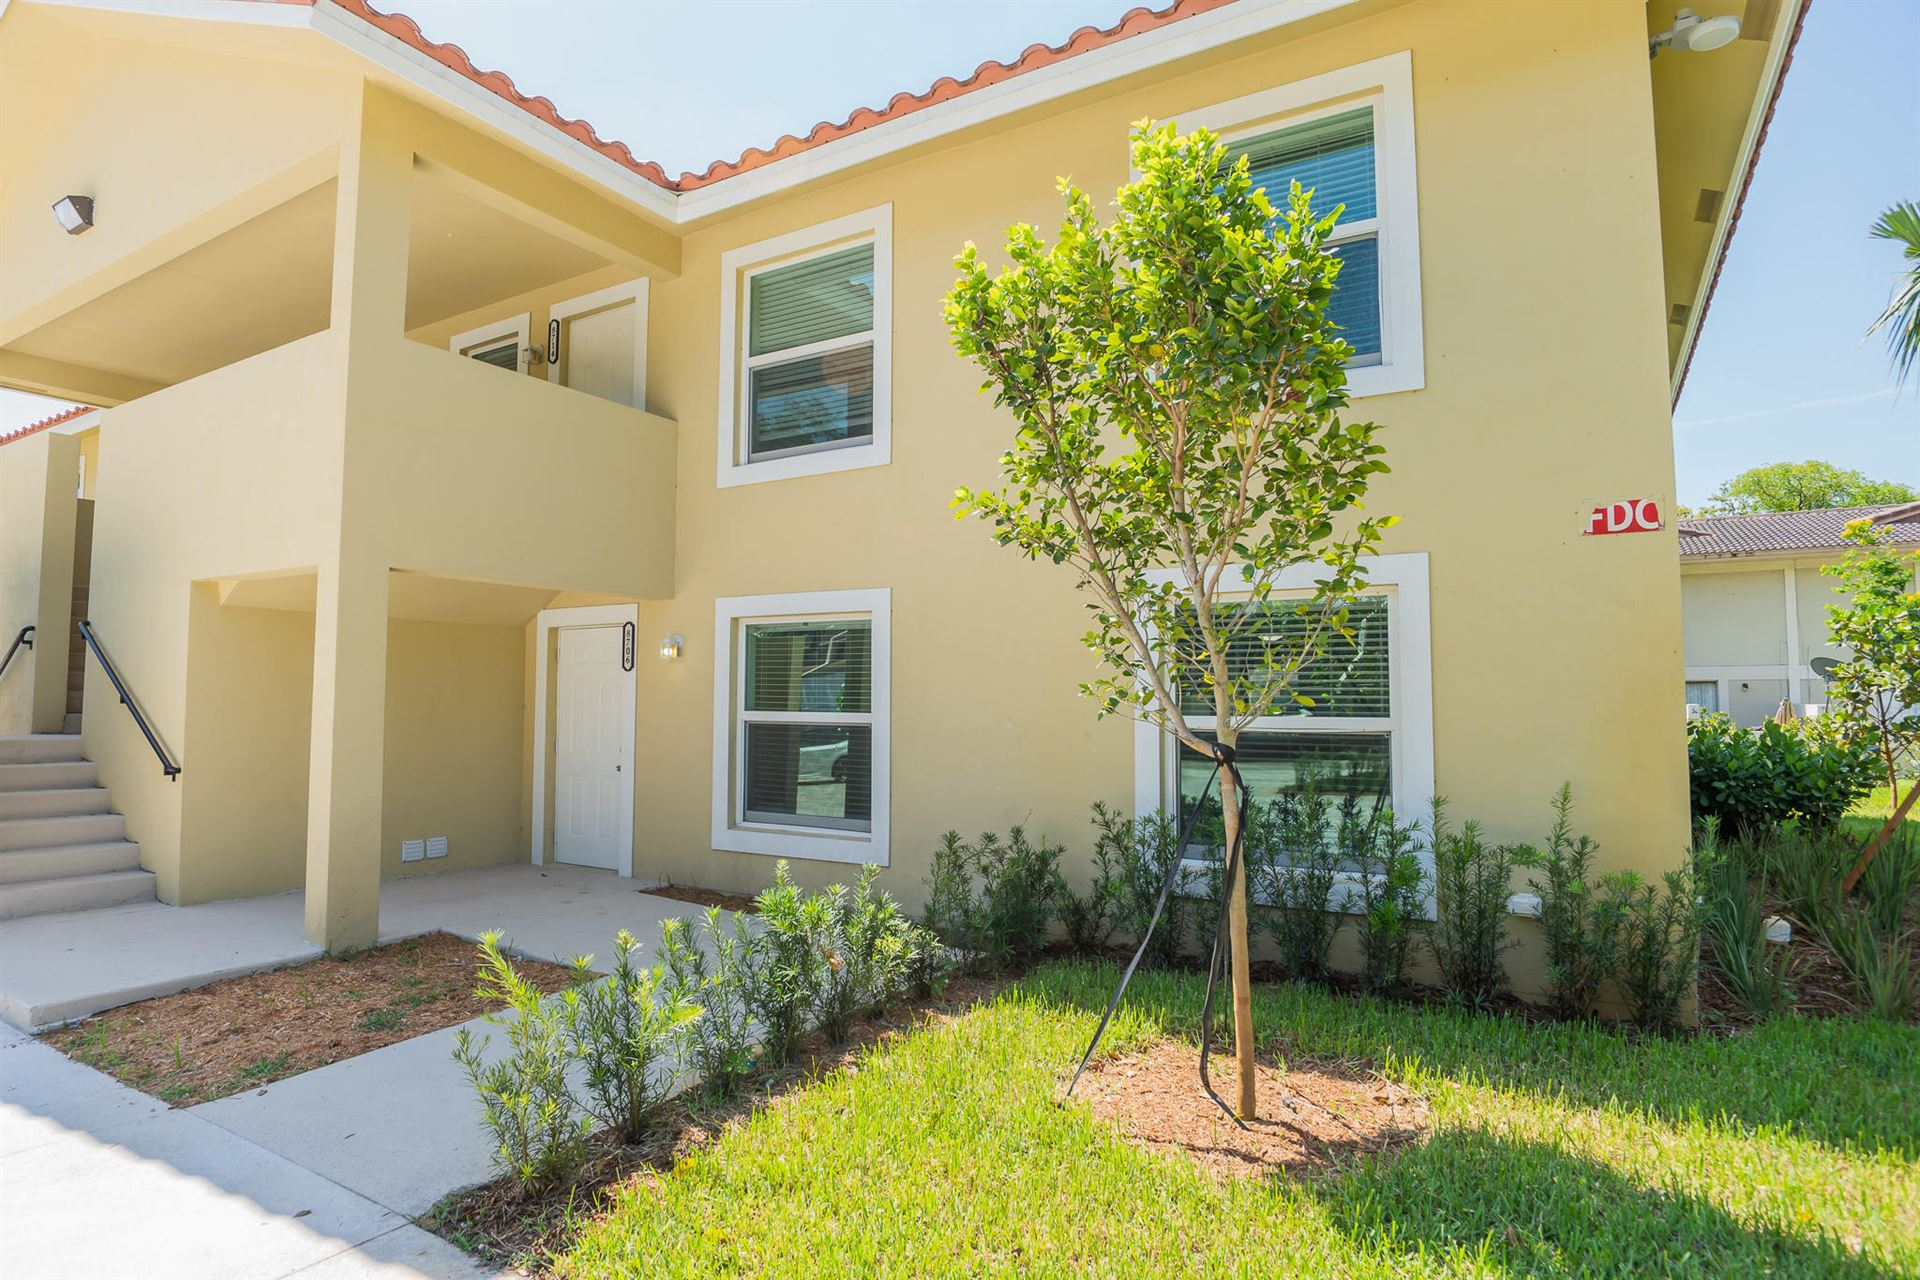 Photo of 8706 NW 35th Street #14, Coral Springs, FL 33065 (MLS # RX-10708679)